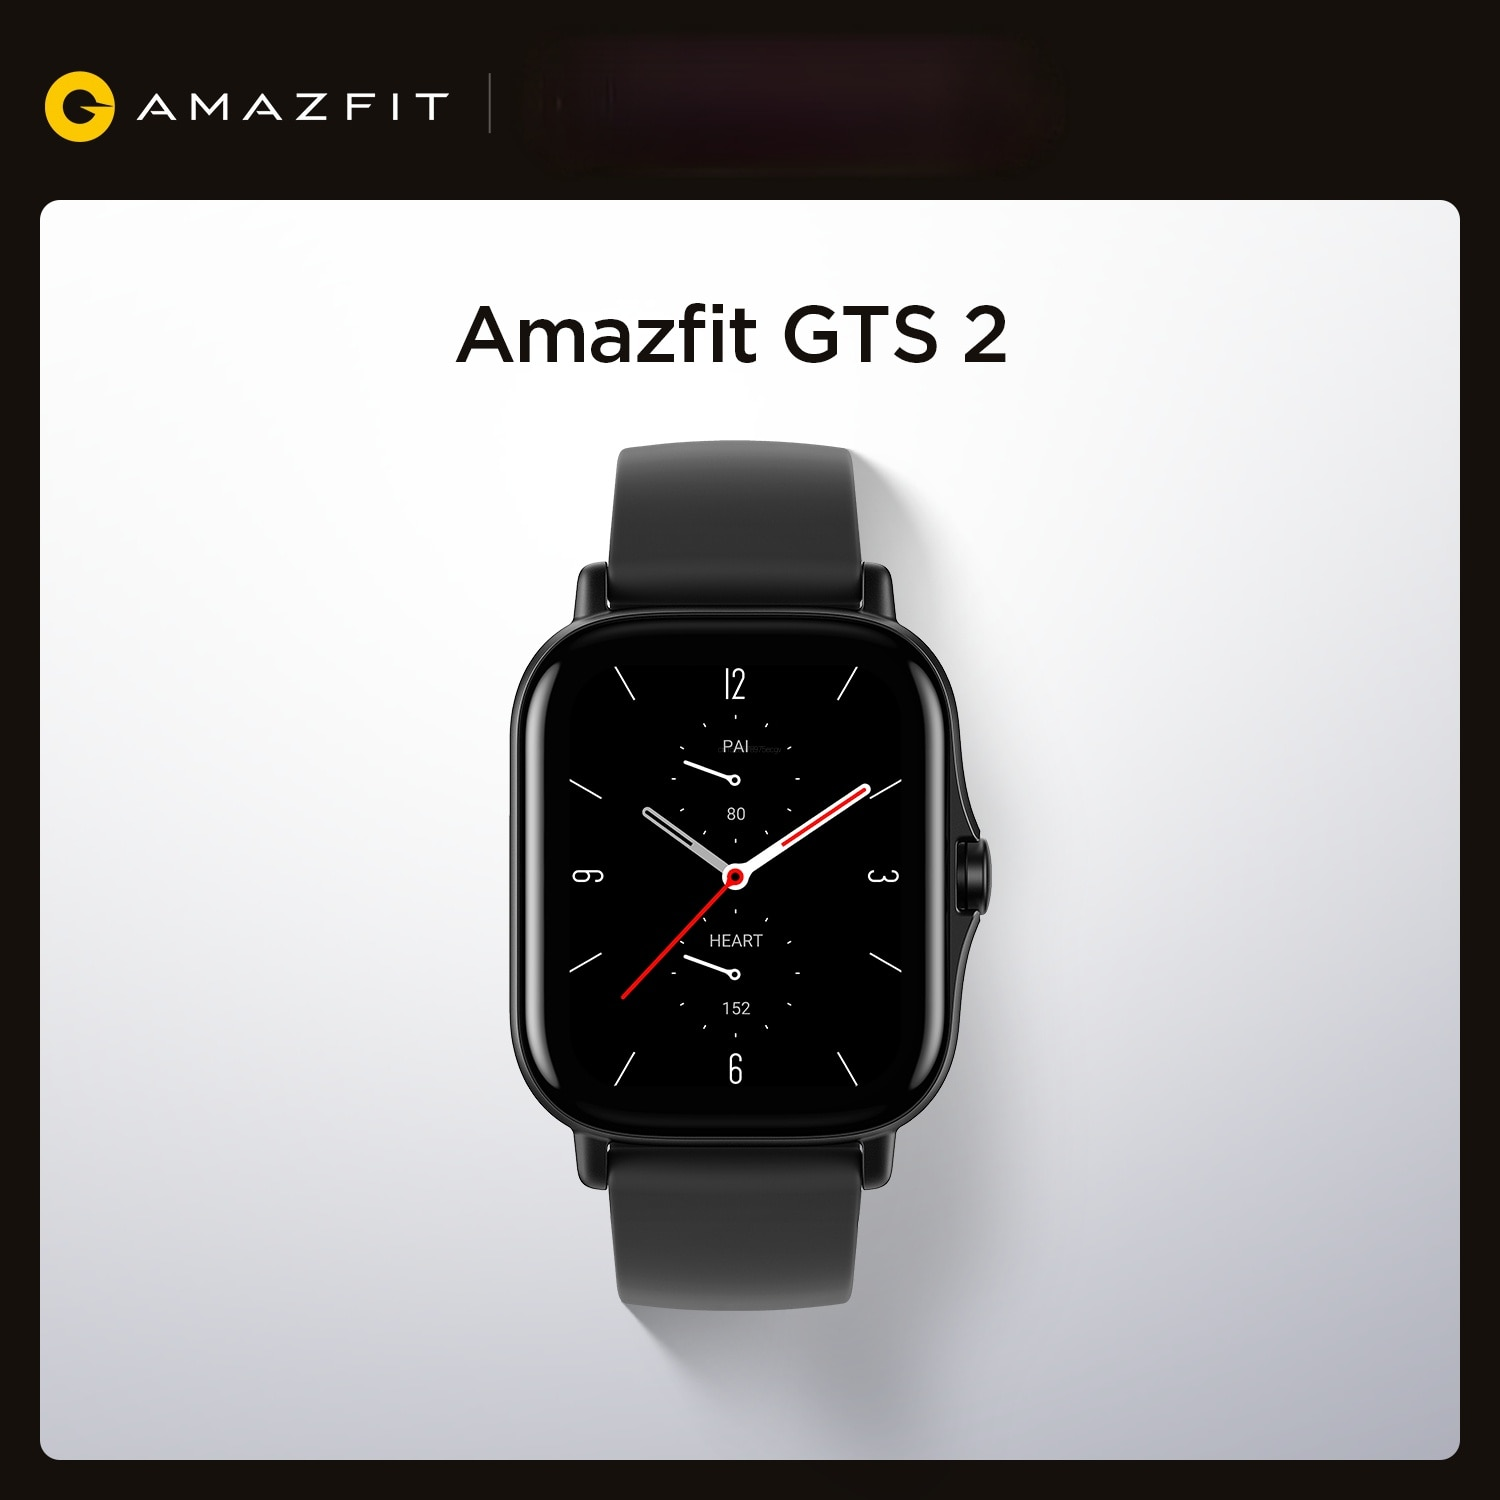 Xiaomi Mijia Amazfit GTS 2 Smartwatch 5ATM Water Resistant AMOLED Display Long Battery Life Smart Watch For Smart Android IOS